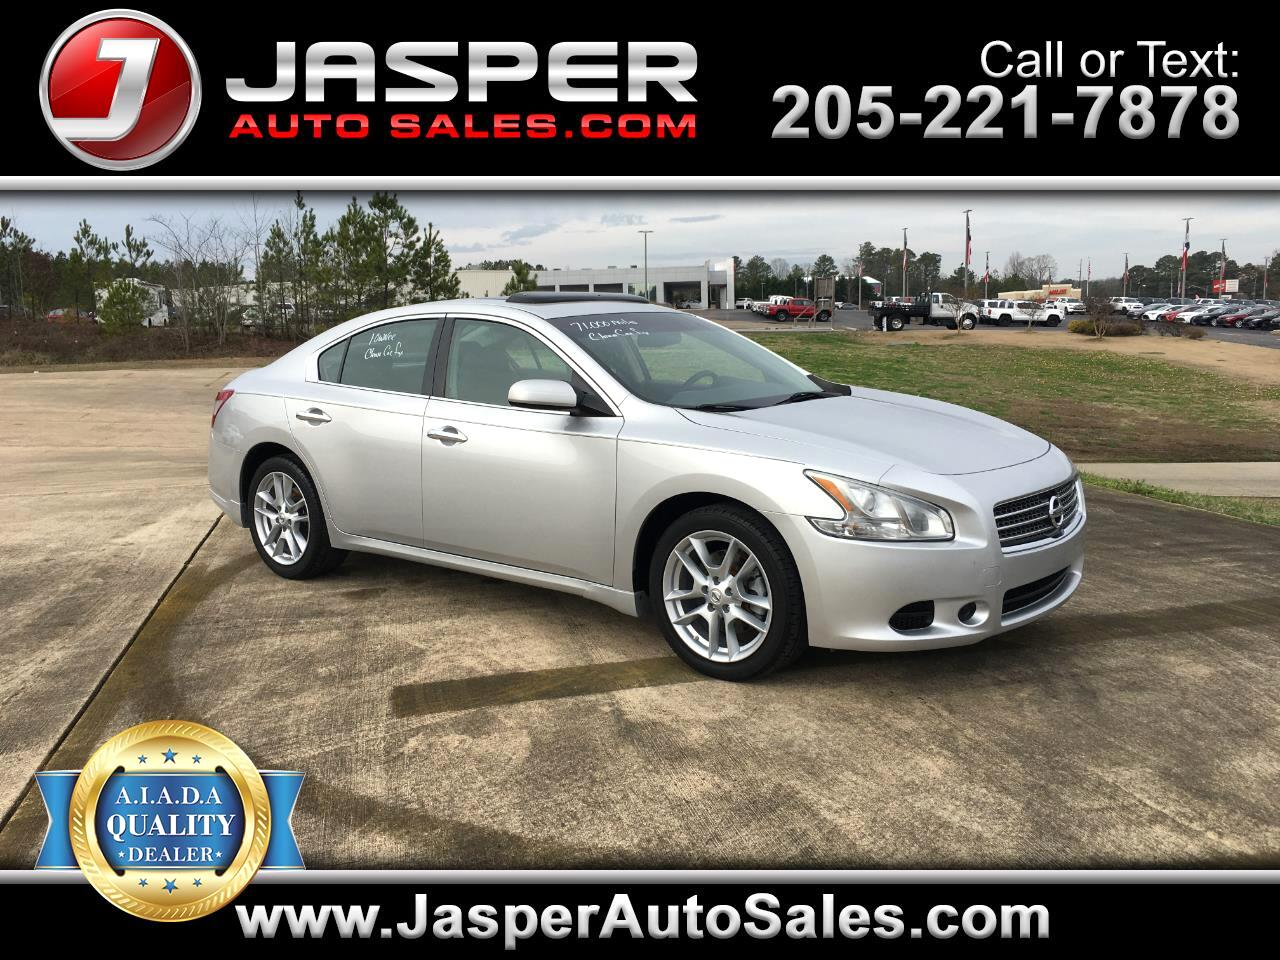 2010 Nissan Maxima >> Used 2010 Nissan Maxima 4dr Sdn V6 Cvt 3 5 S For Sale In